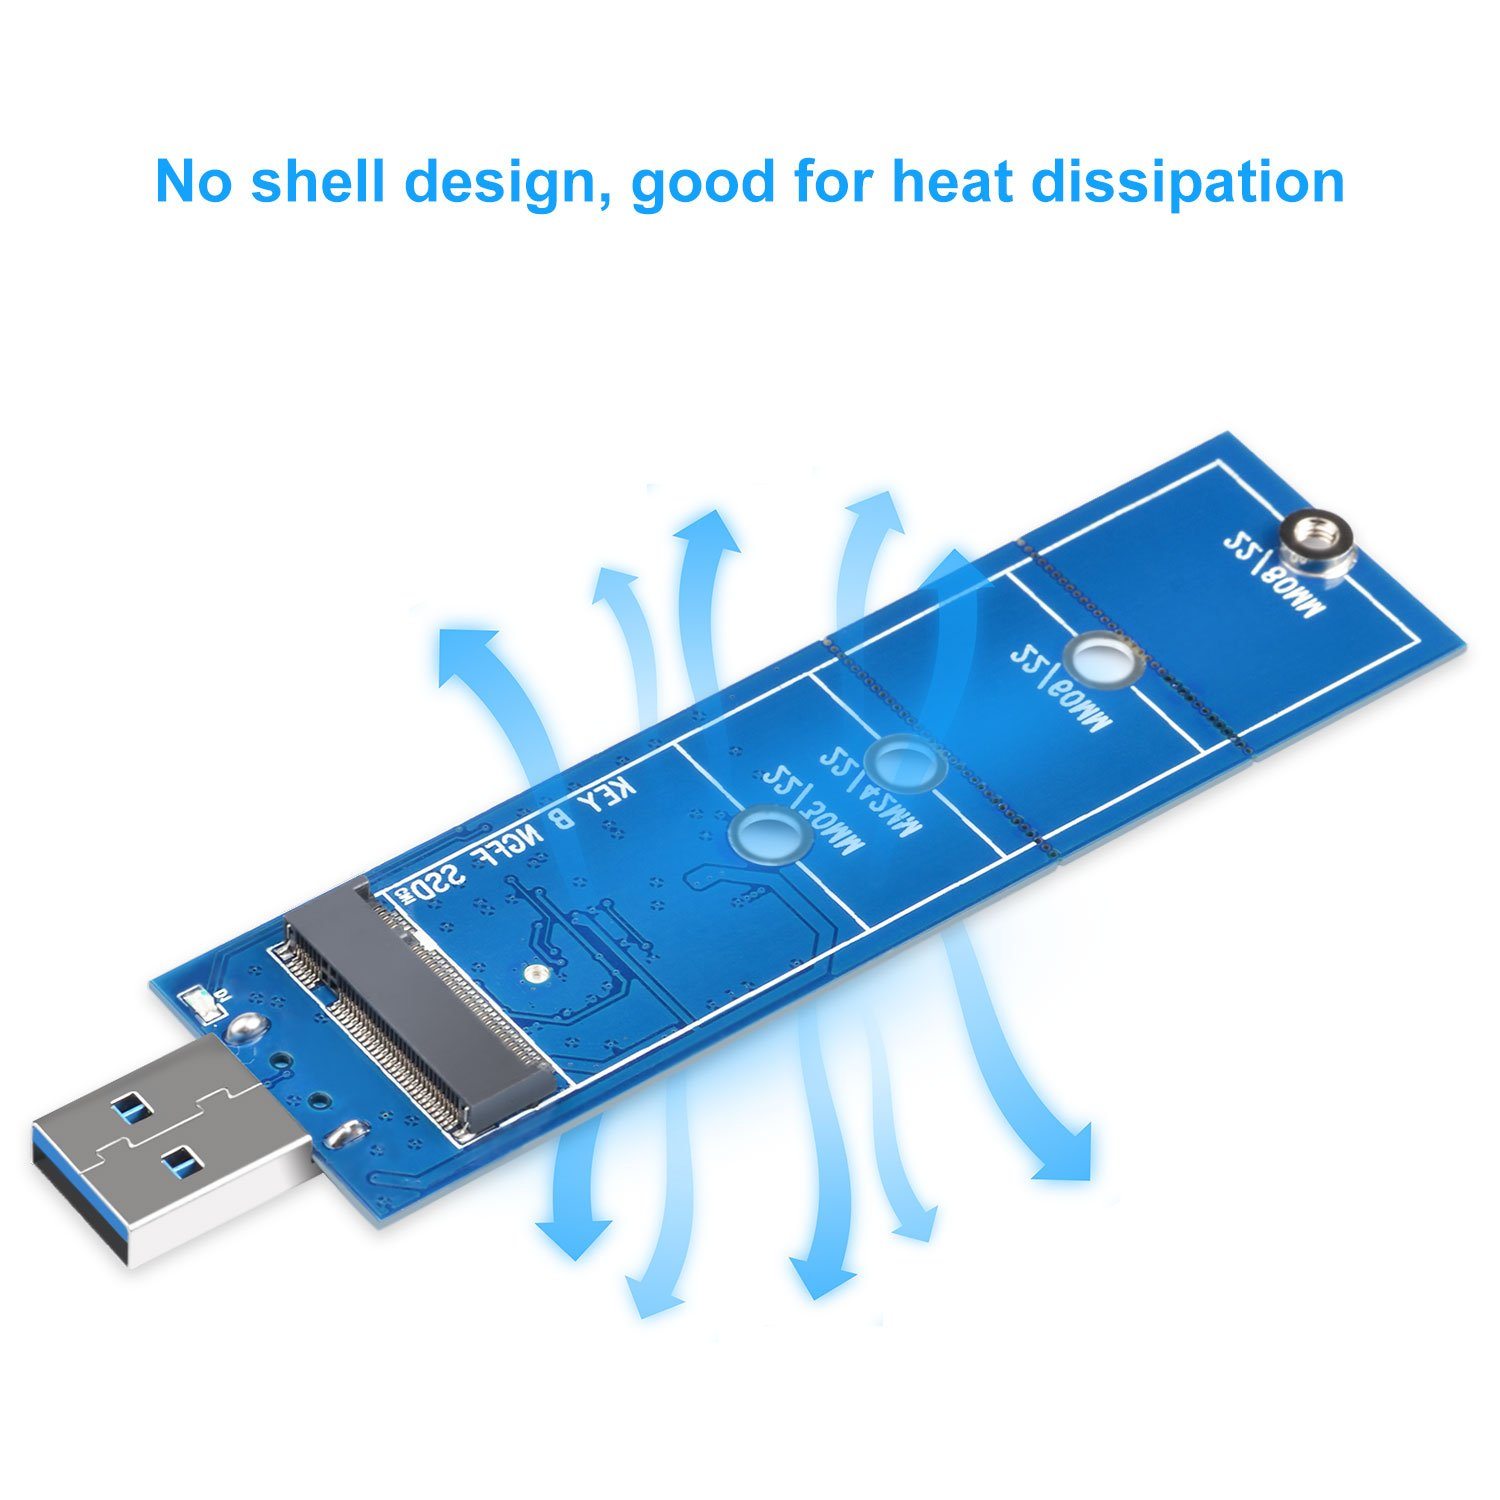 M2 SSD Enclosure Compatible for SATA B /& B+M Key NGFF USB Coverter Card 5Gbps Support 2230 2242 2260 2280 NGFF SSD(NOT for NVME ELUTENG M.2 SSD to USB 3.0 Adapter